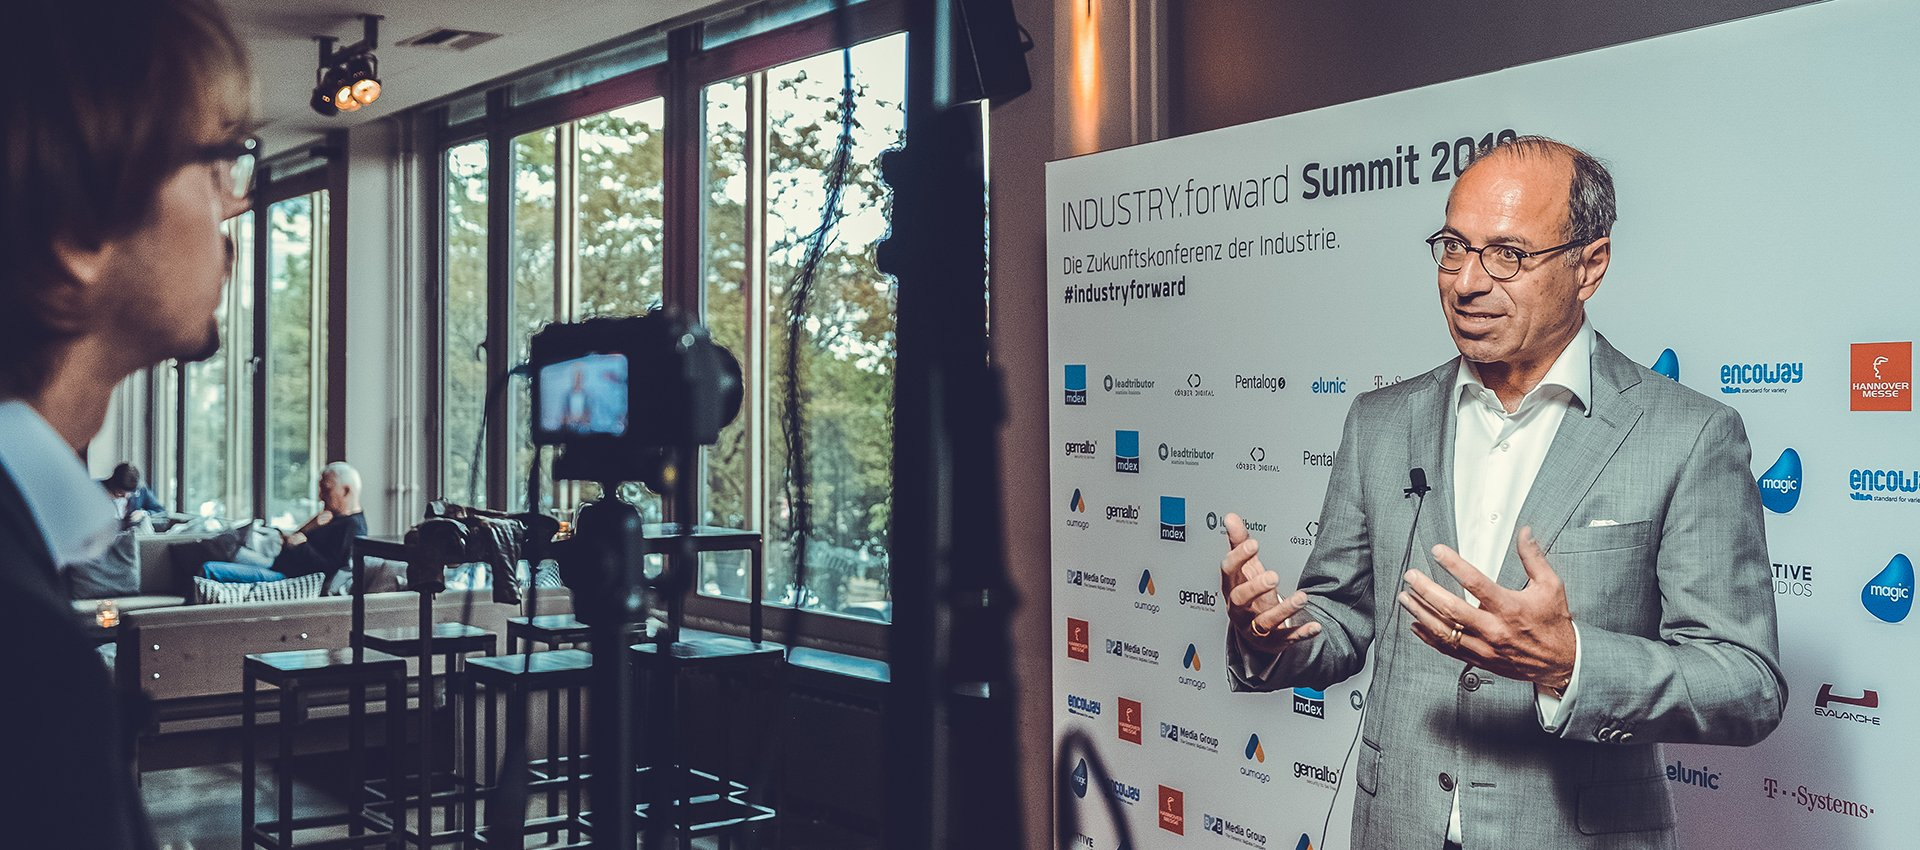 Industry.forward Summit 2019 – Interview